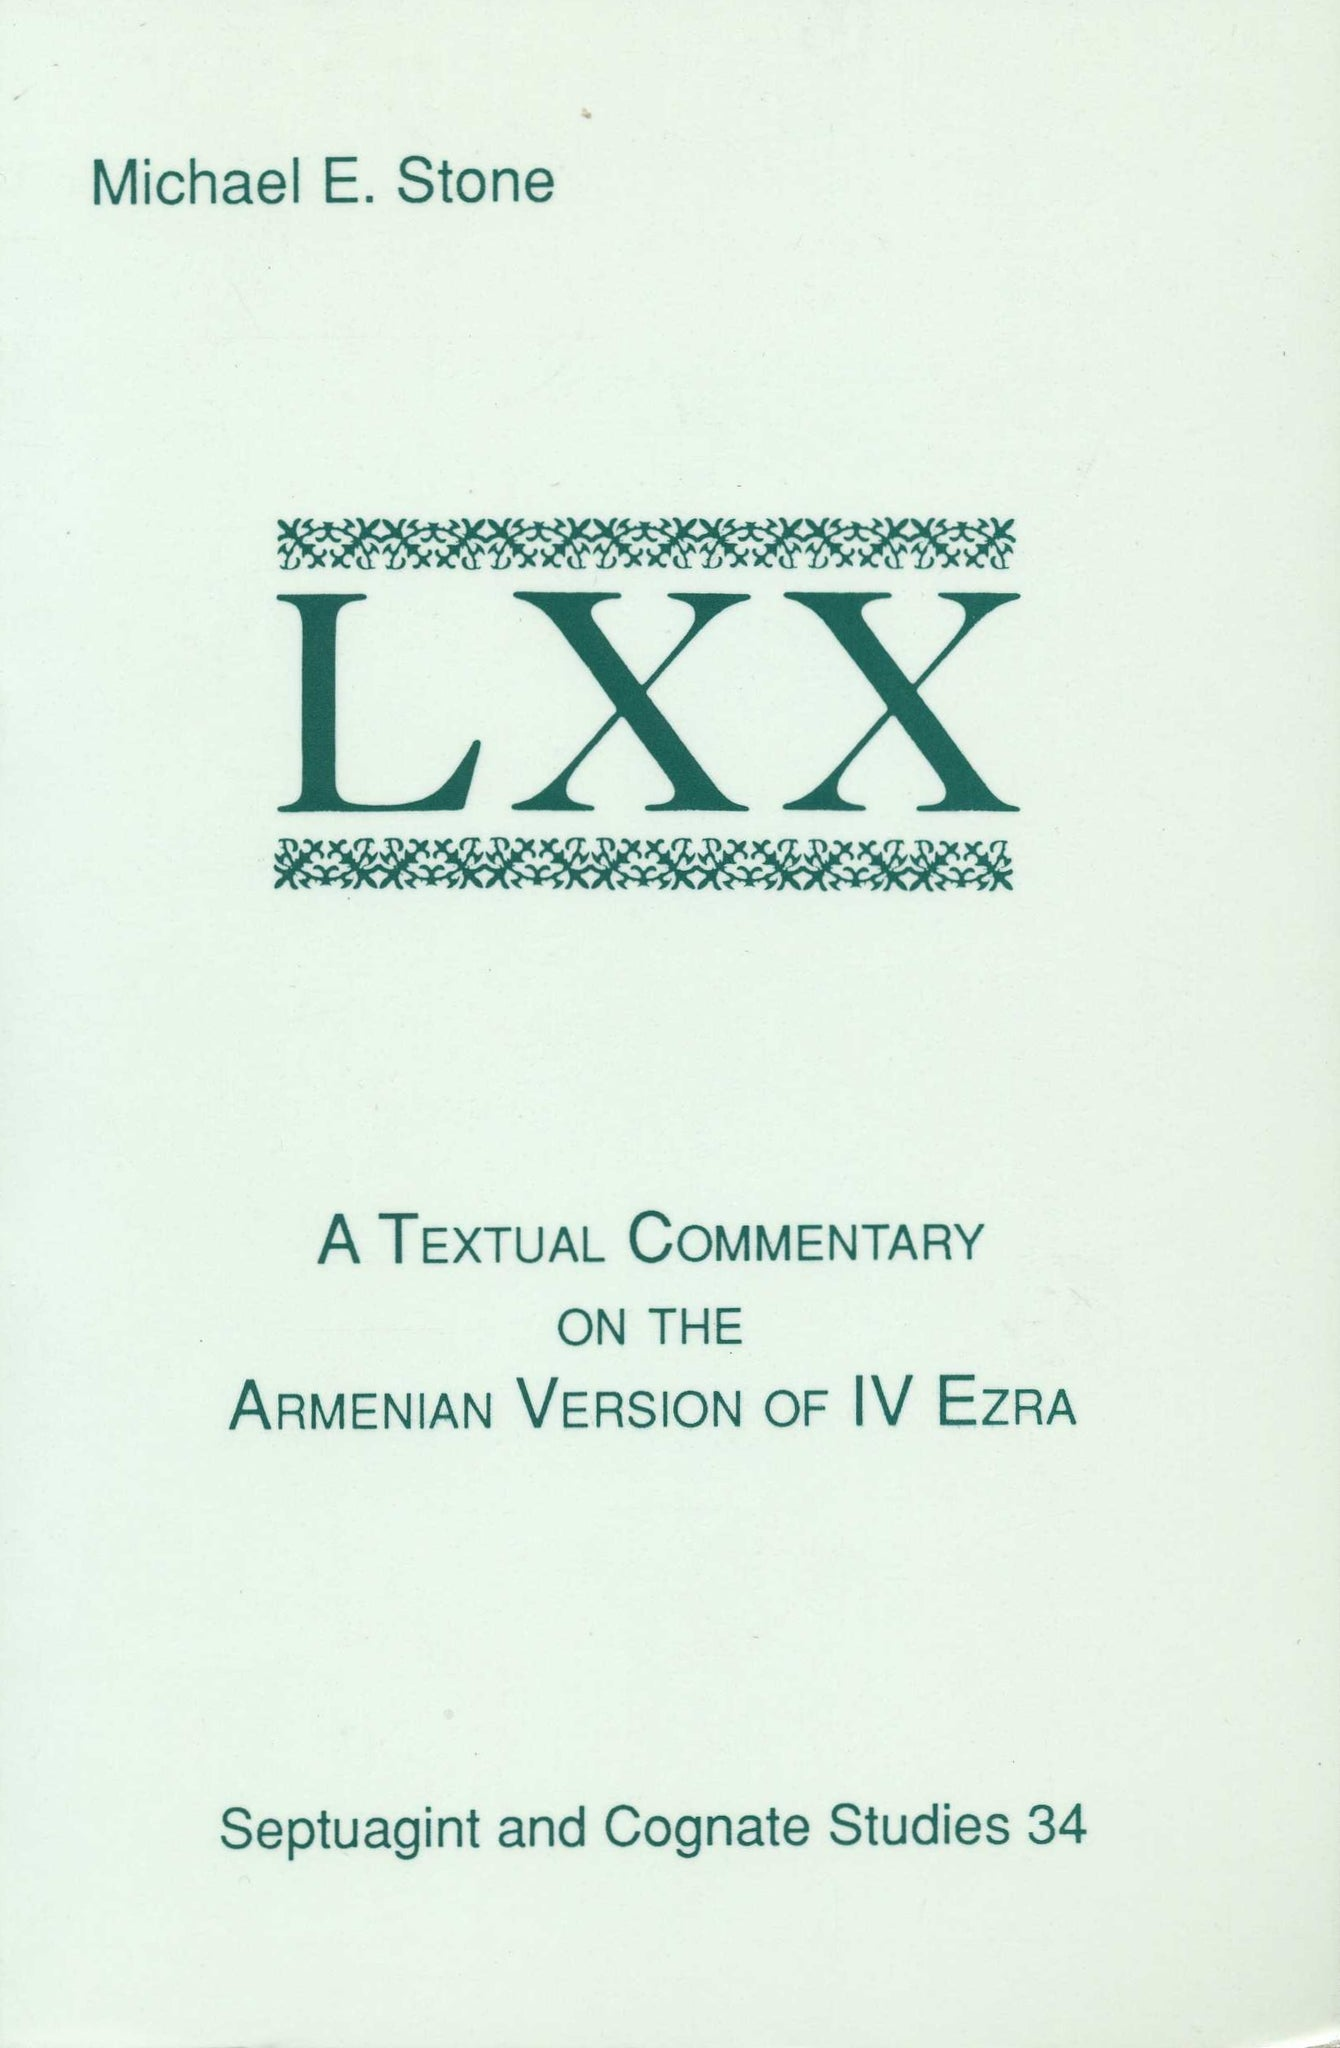 TEXTUAL COMMENTARY ON THE ARMENIAN VERSION OF IV EZRA